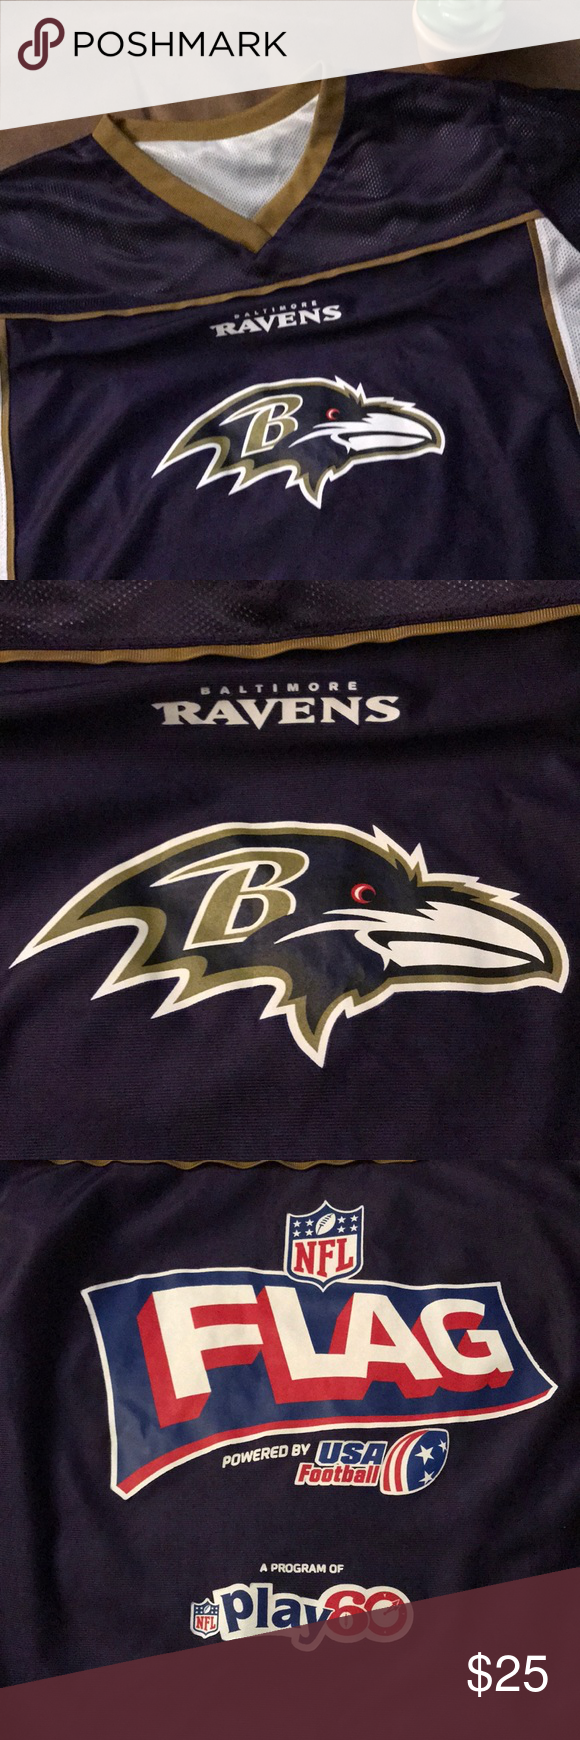 Youth Baltimore Ravens Flag Football Jersey in 2020